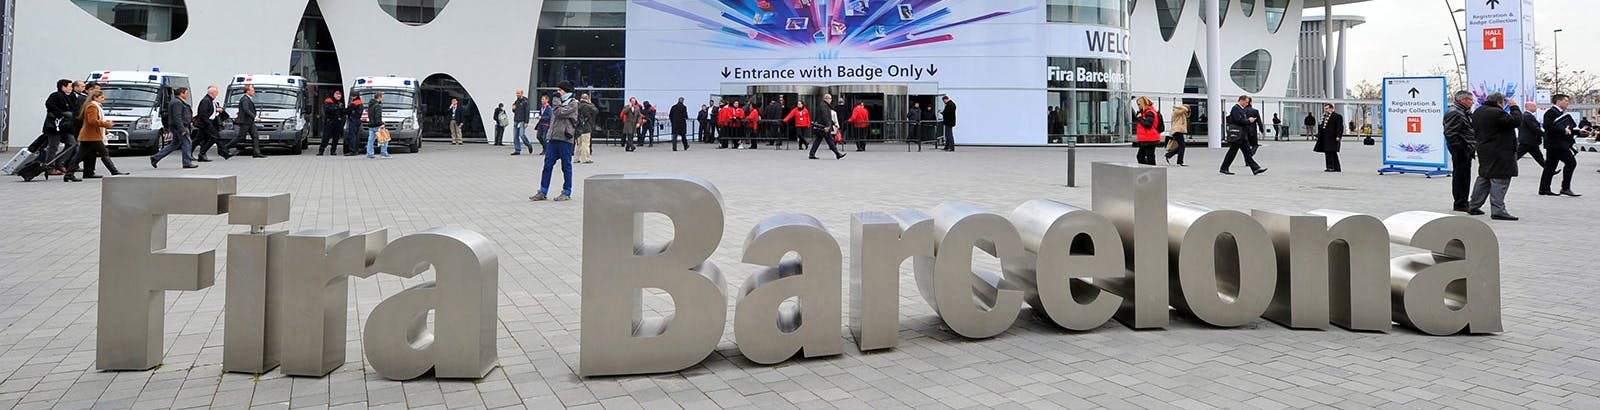 2016 02 26 hero - #MWC17: Live Video and Chat Bots Usher in the Era of Real-time Content